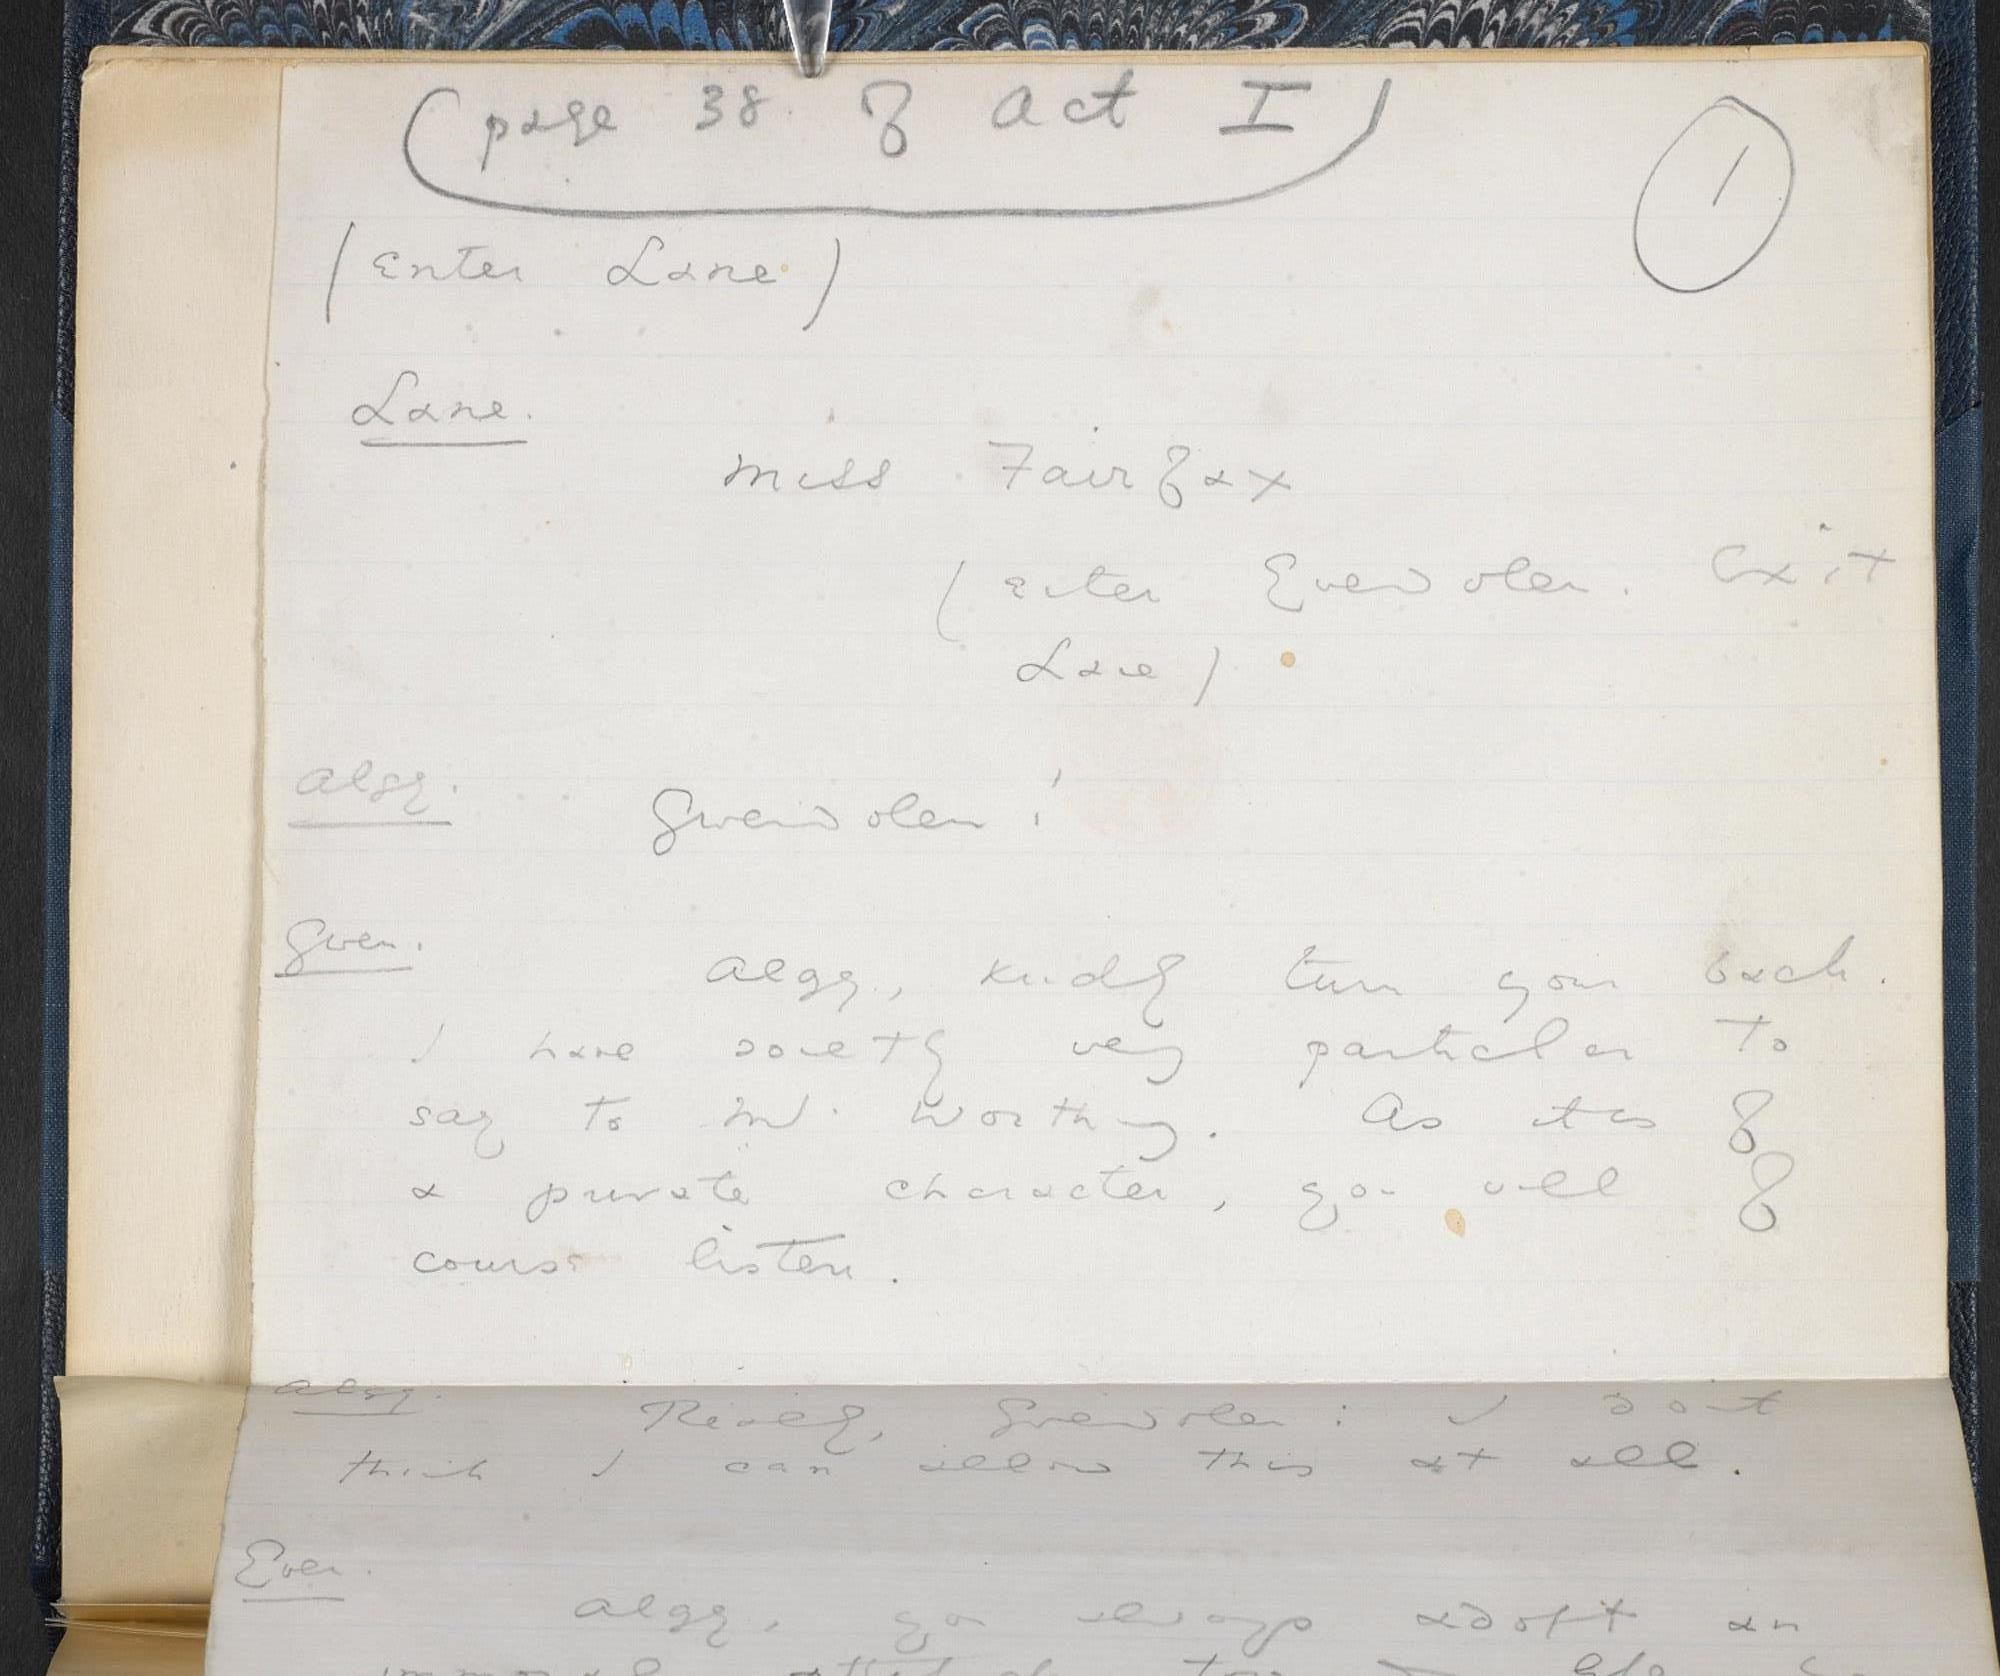 Manuscript draft of The Importance of Being Earnest by Oscar Wilde